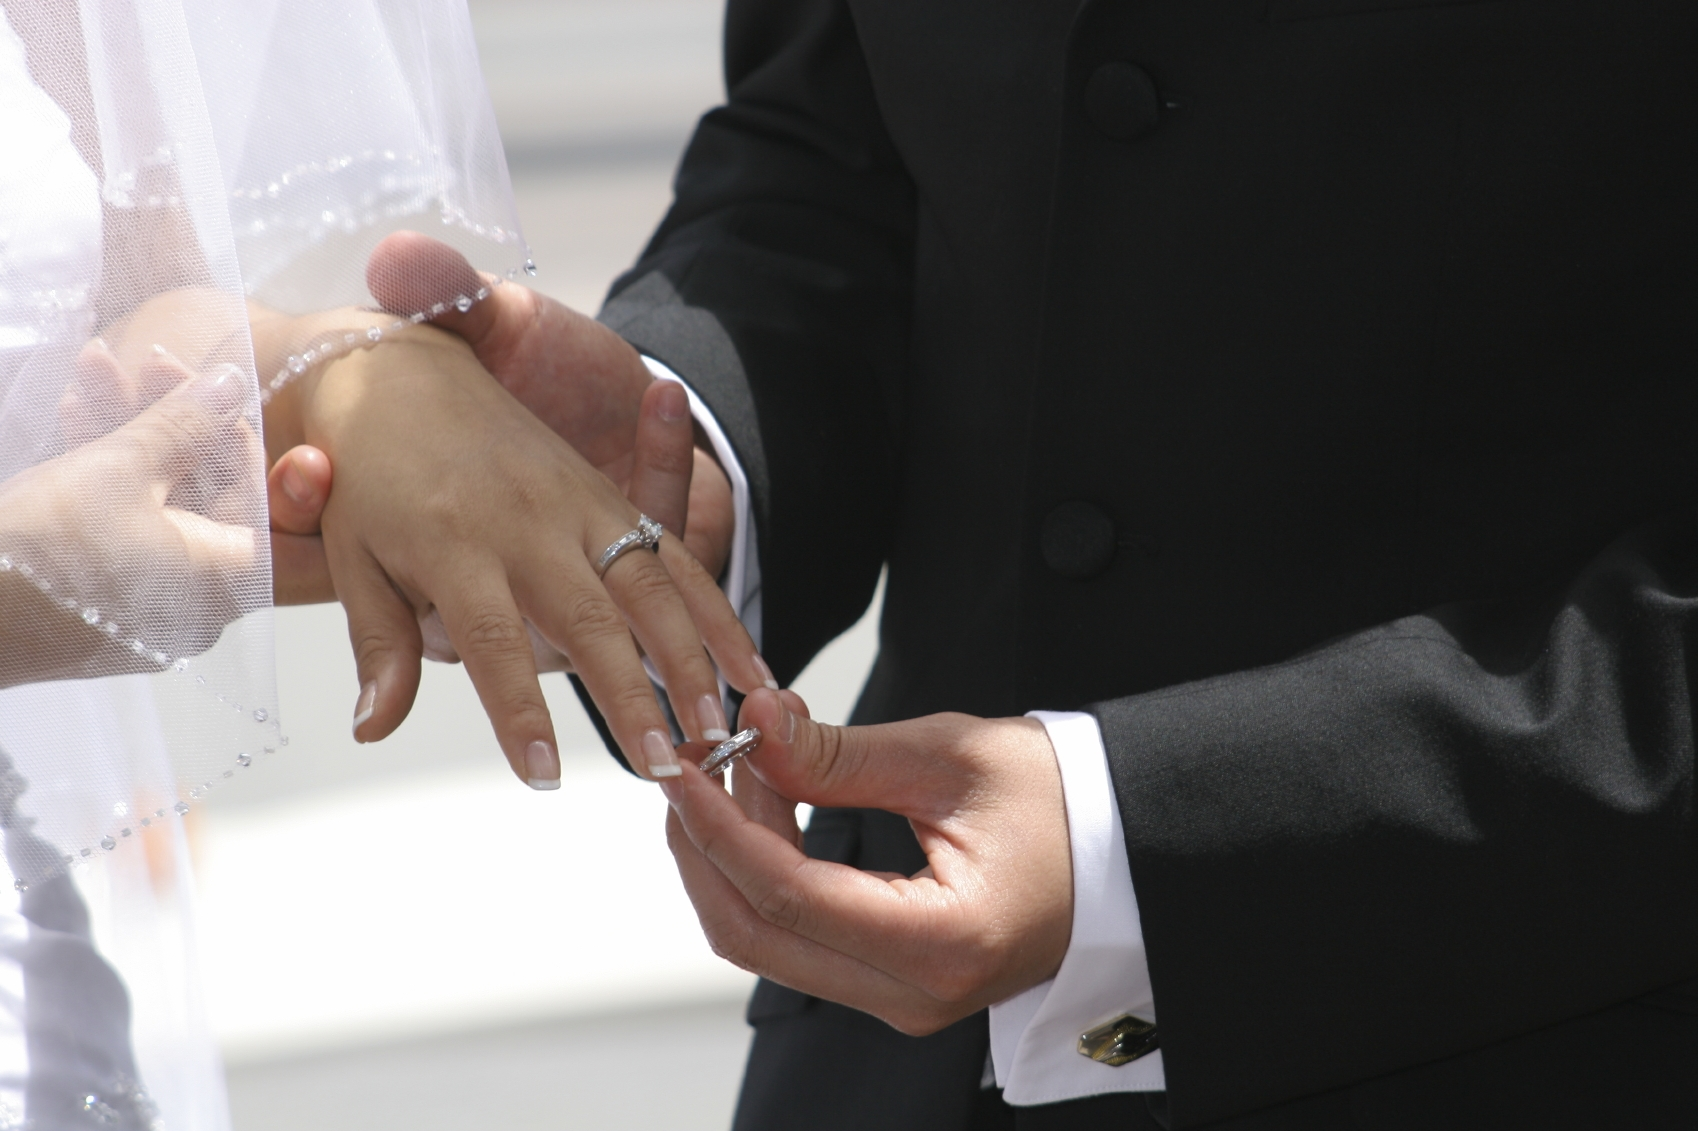 Exchanging Rings During the Ceremon